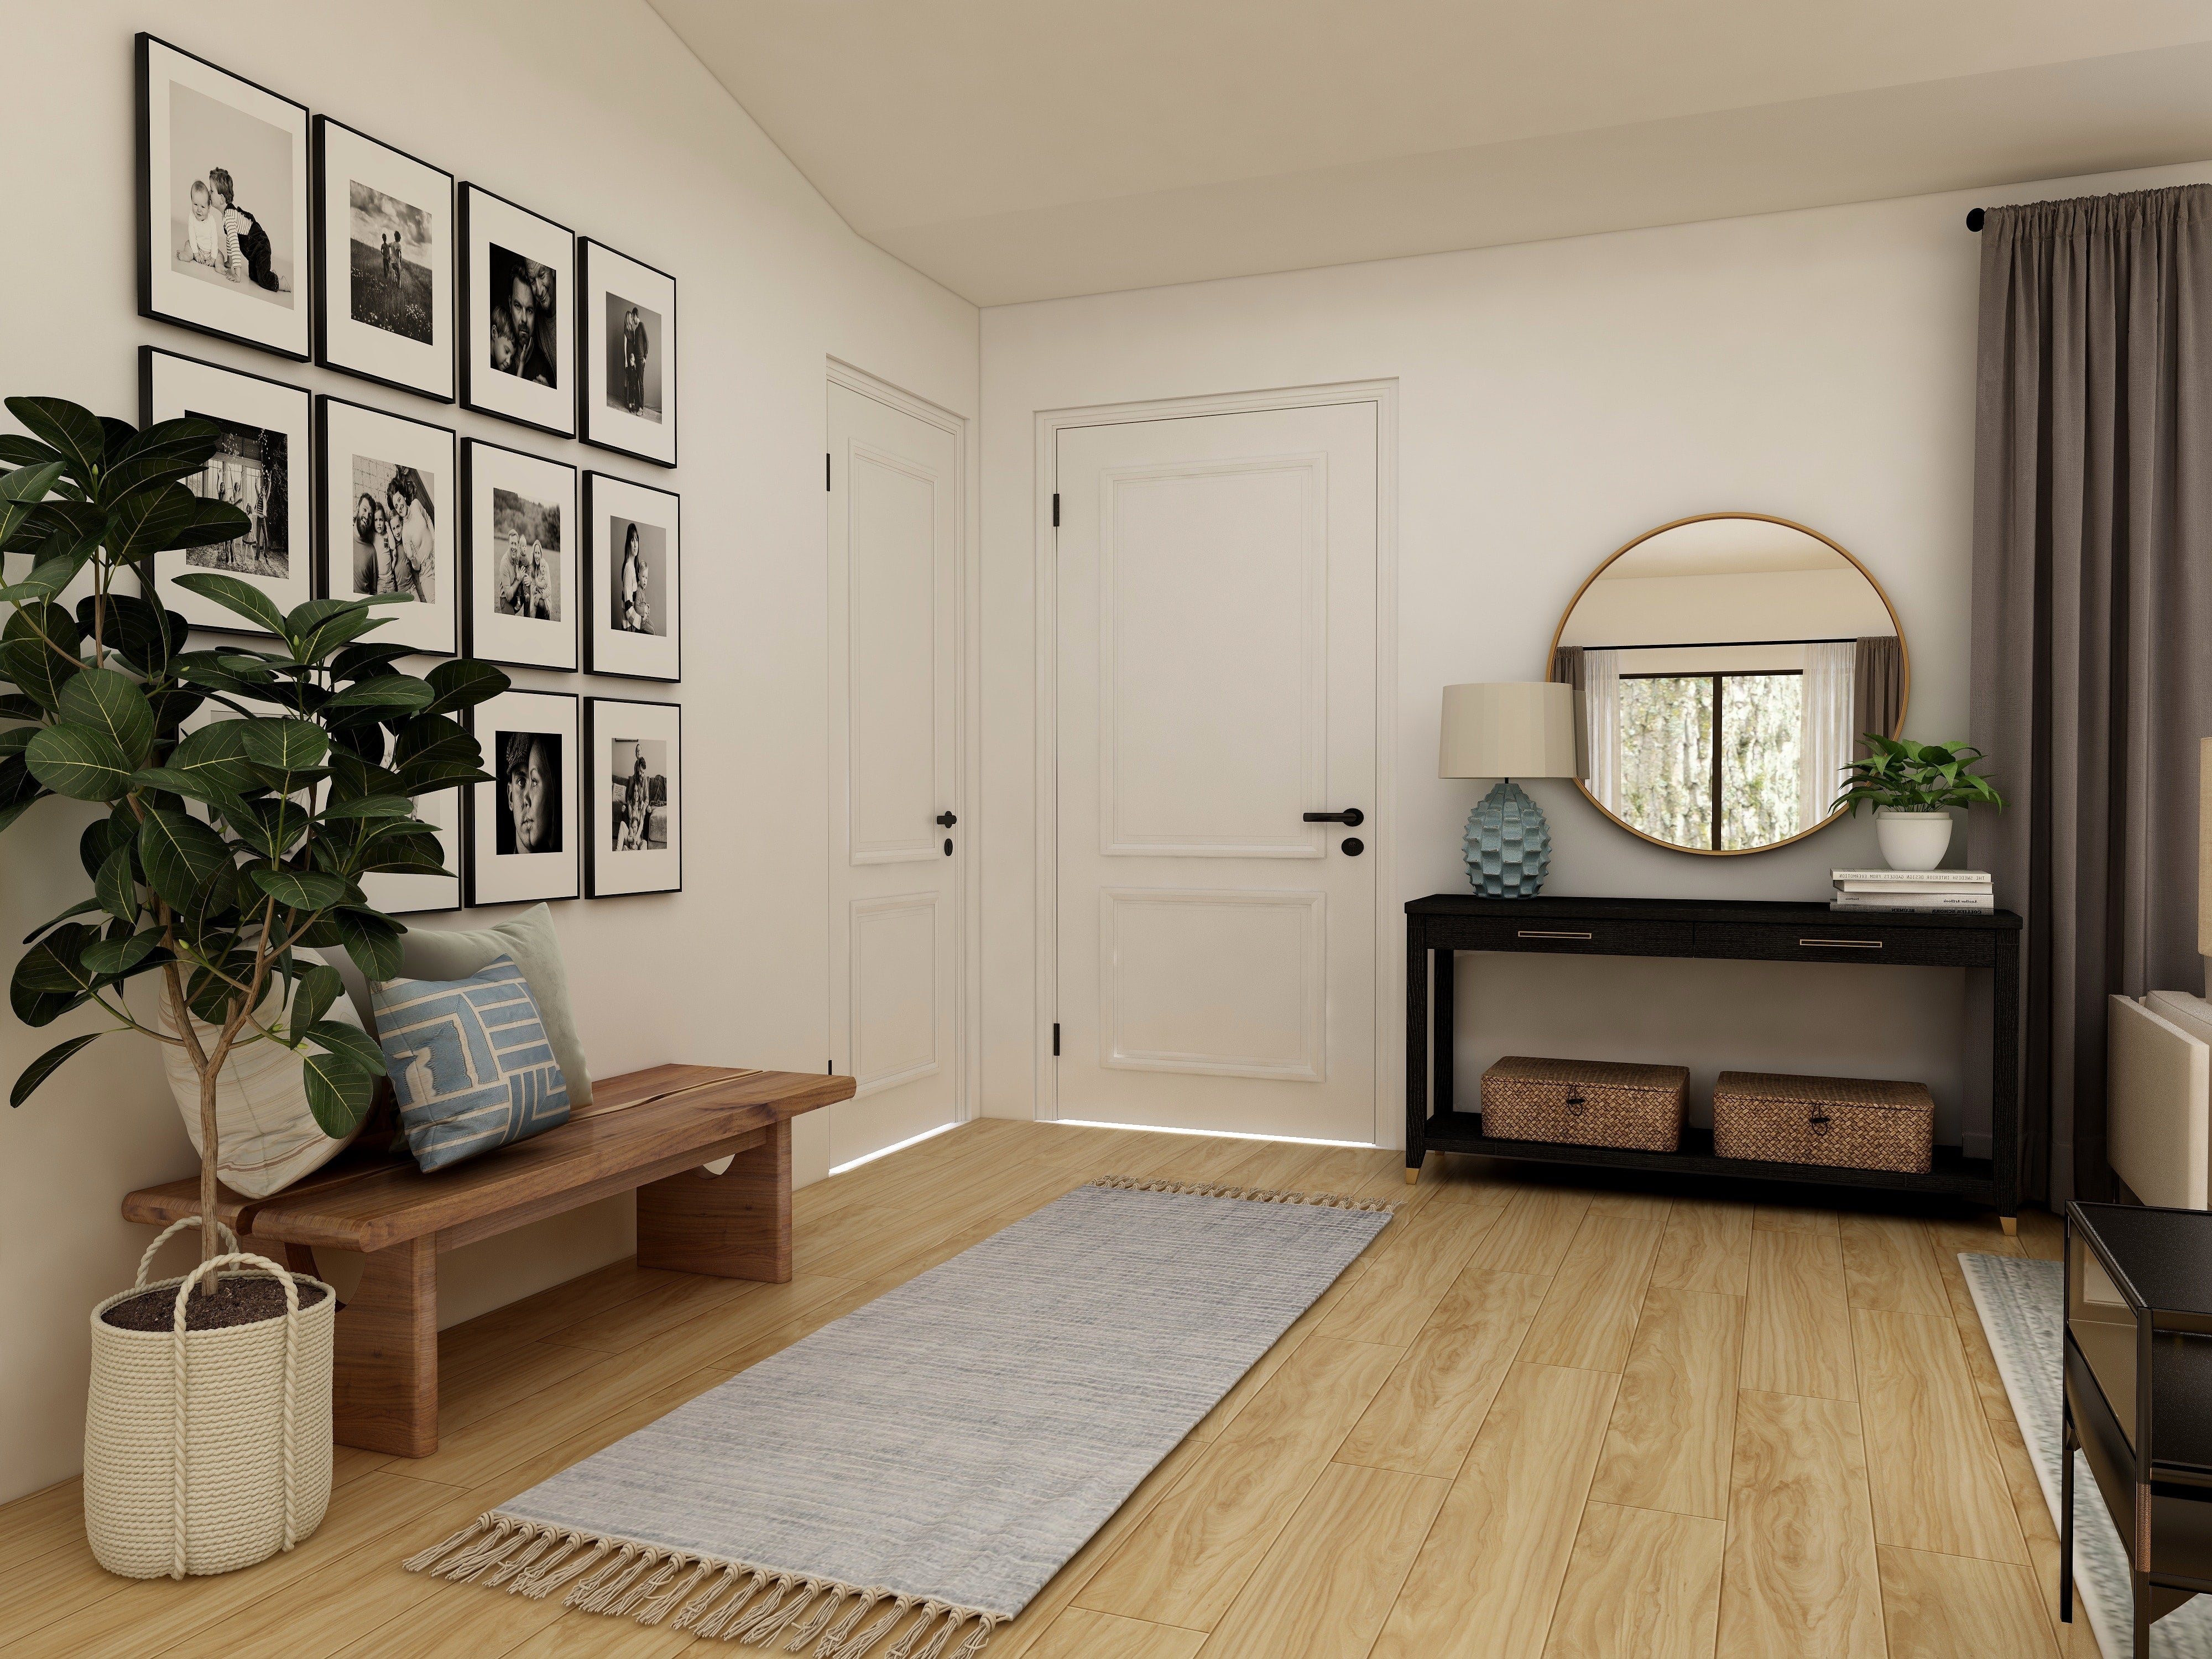 Image of Entryway to Home with Mirror and Plant in Hallway